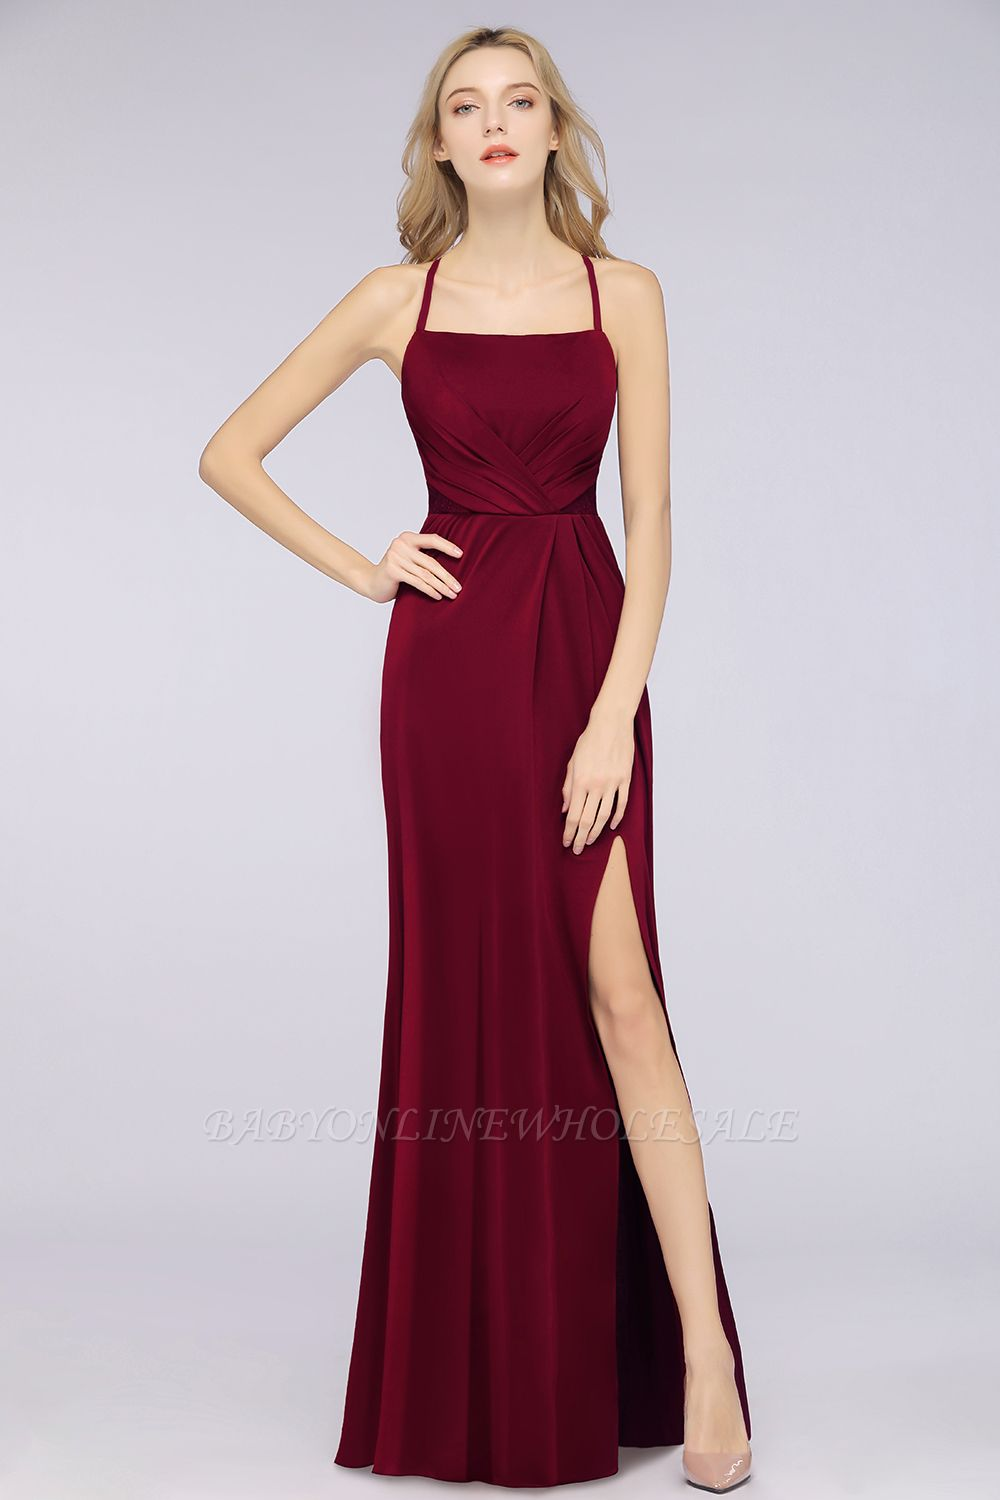 Spandex Lace Mermaid Spaghetti-Straps Sleeveless Long Bridesmaid Dress with Ruffle